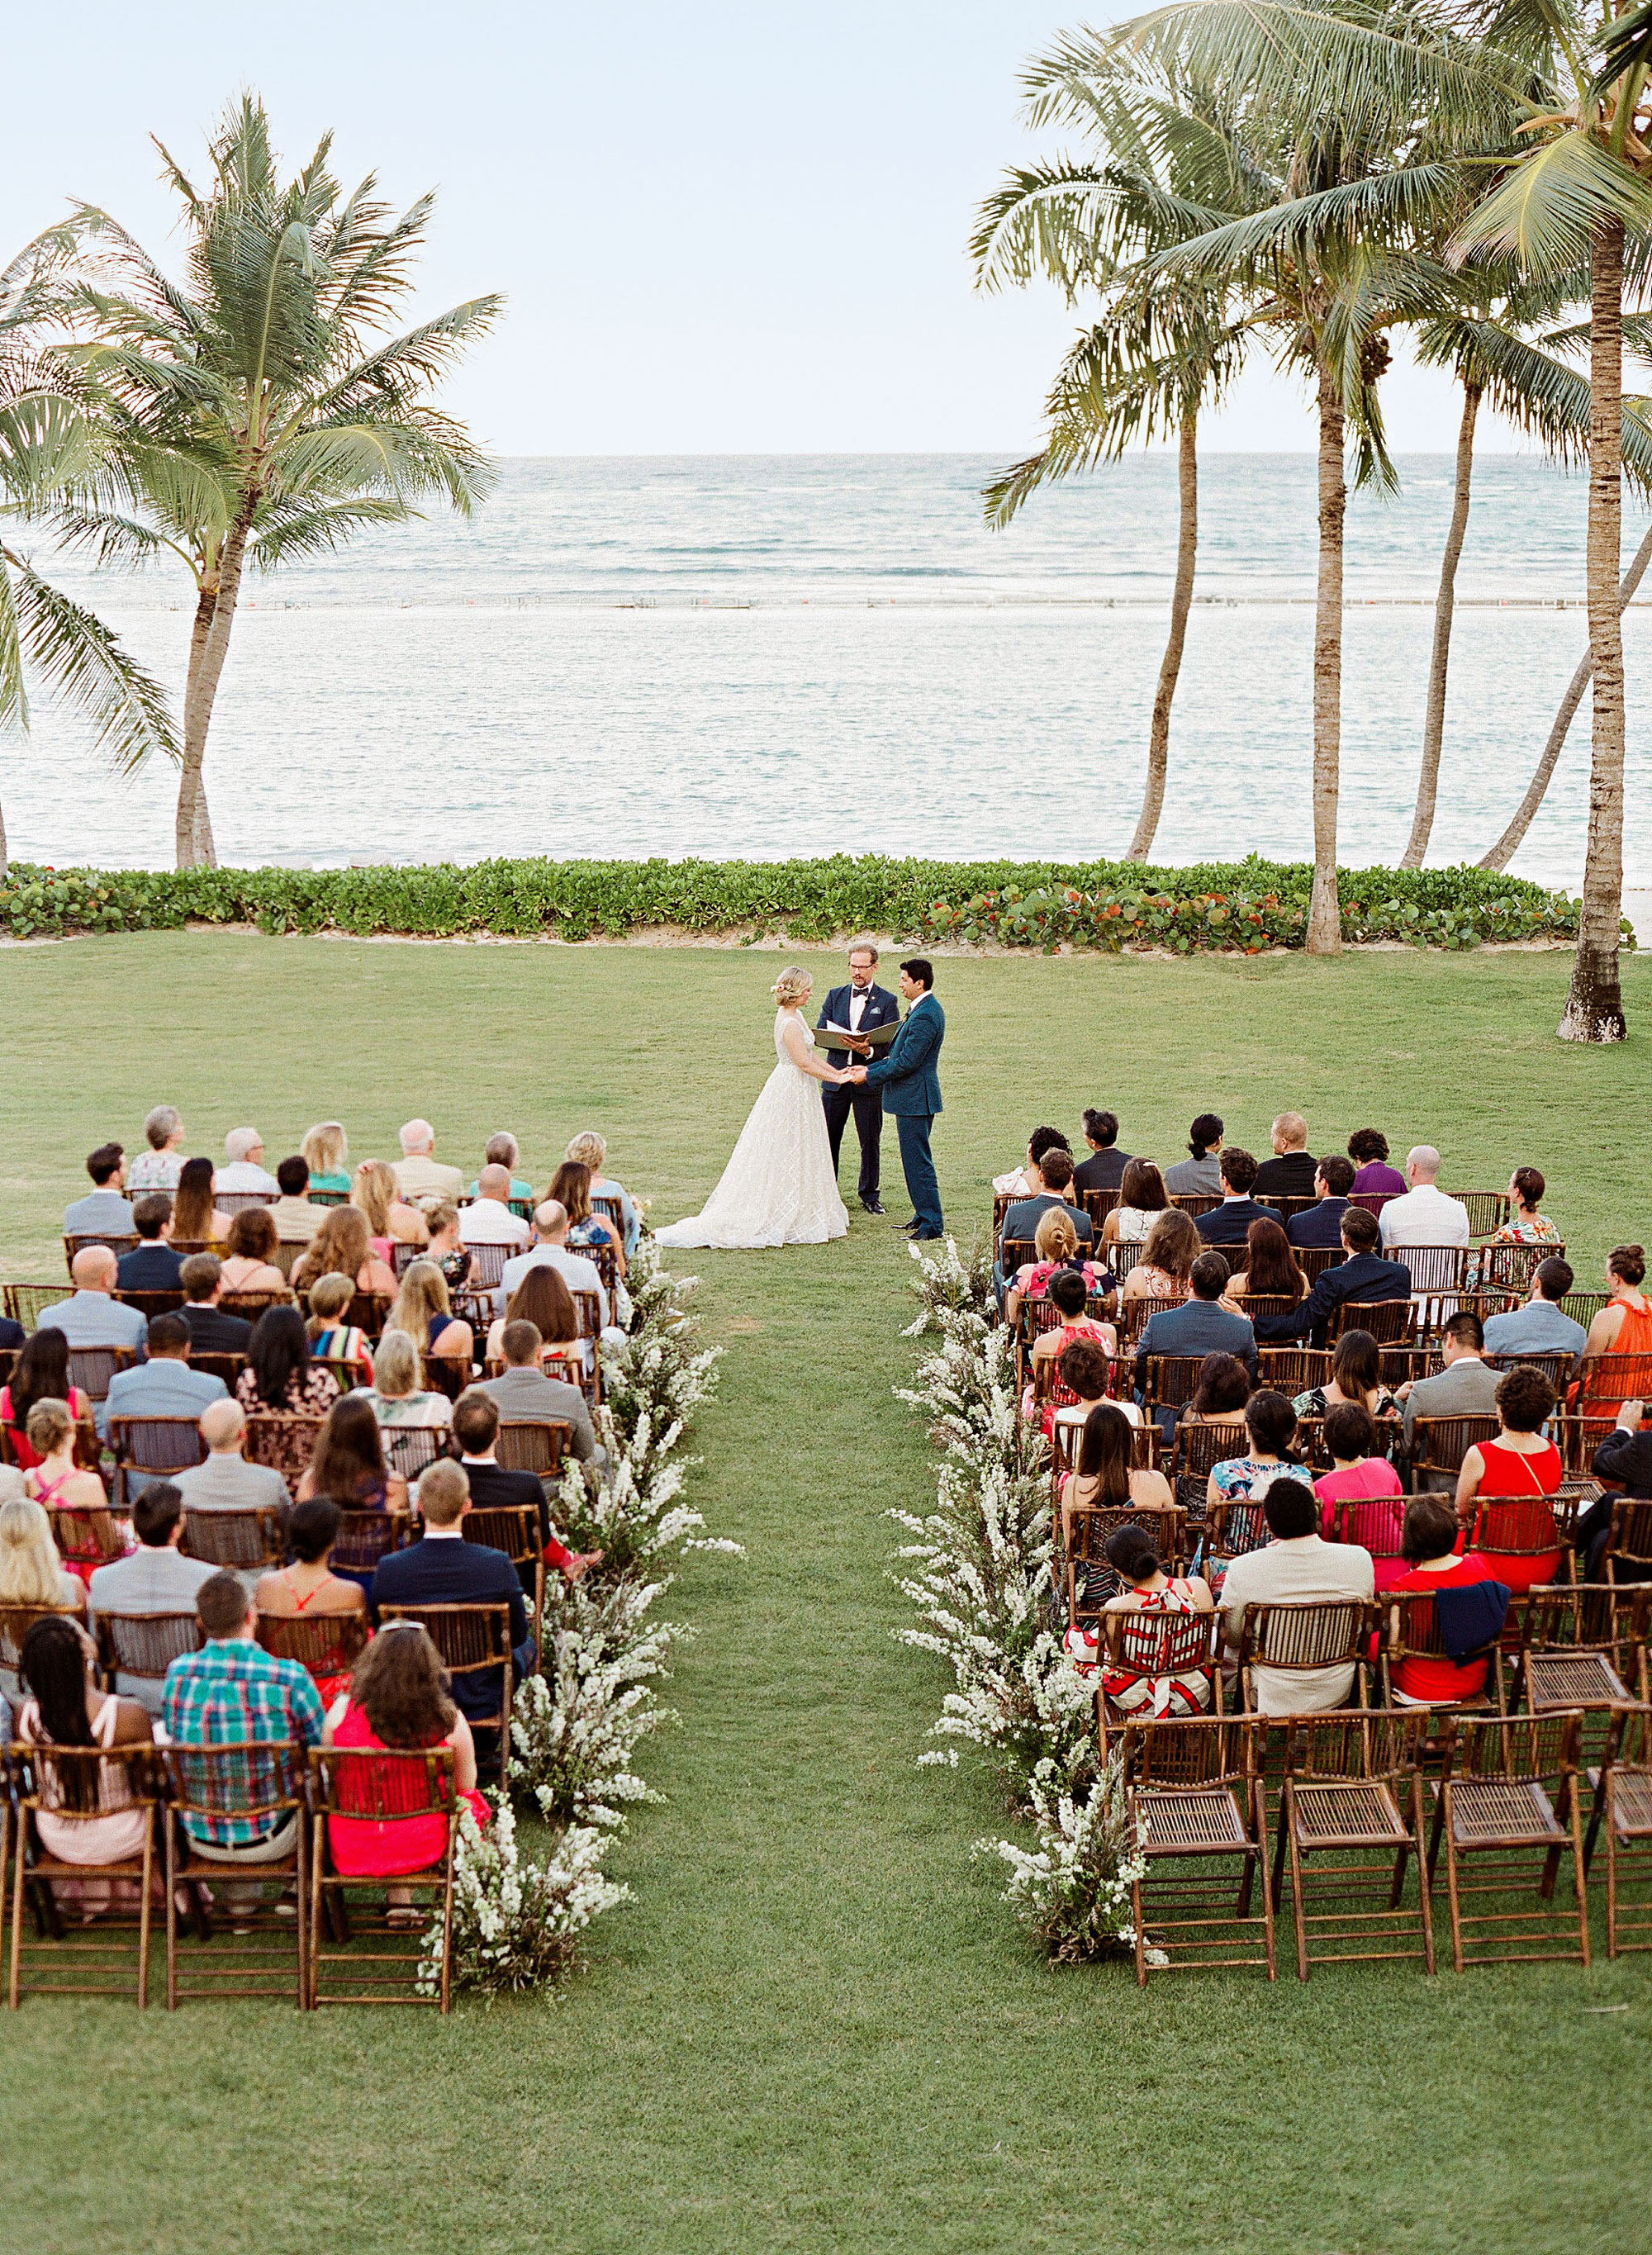 4 Reasons Why You Don't Have to Feel Guilty About Having a Destination Wedding